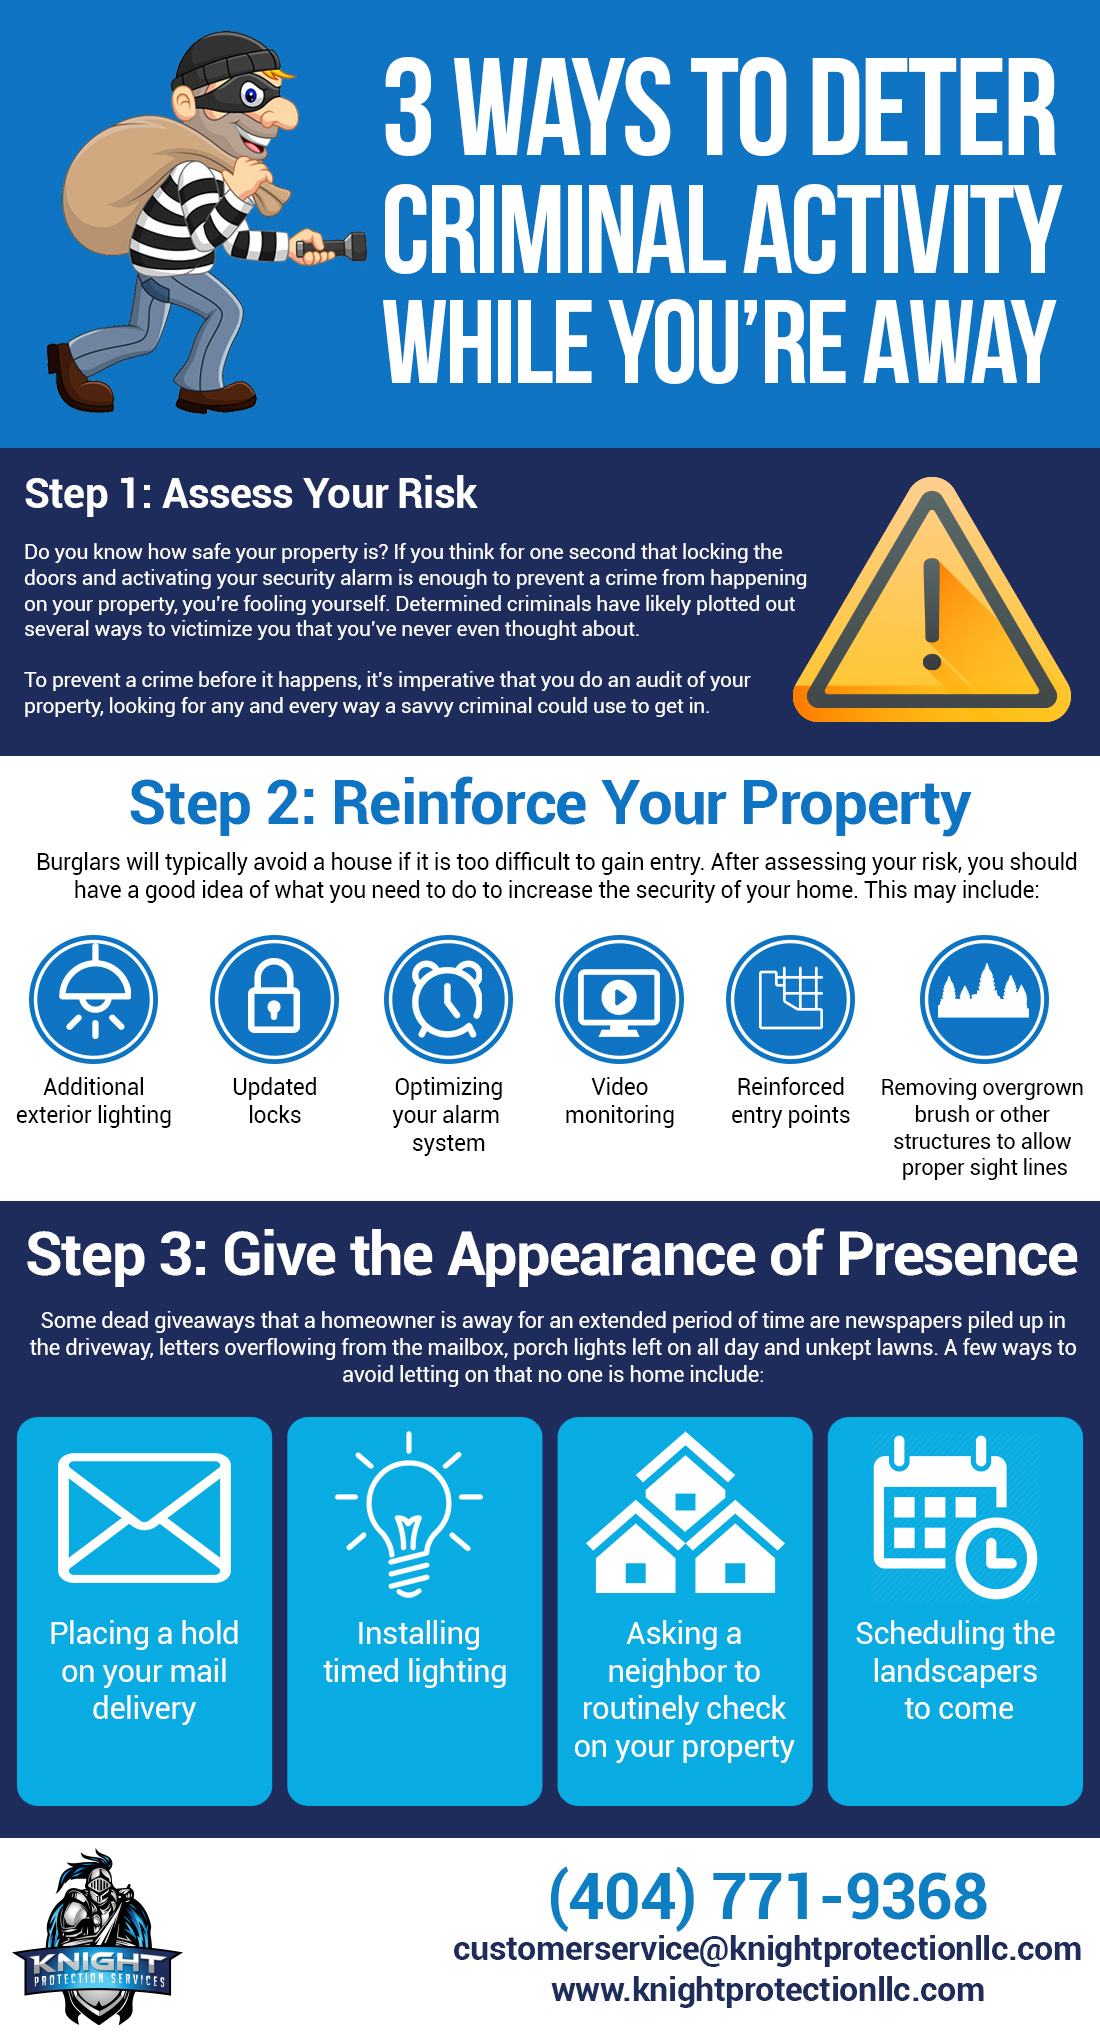 infographic-3-ways-deter-criminal-activity-knight-protection-services